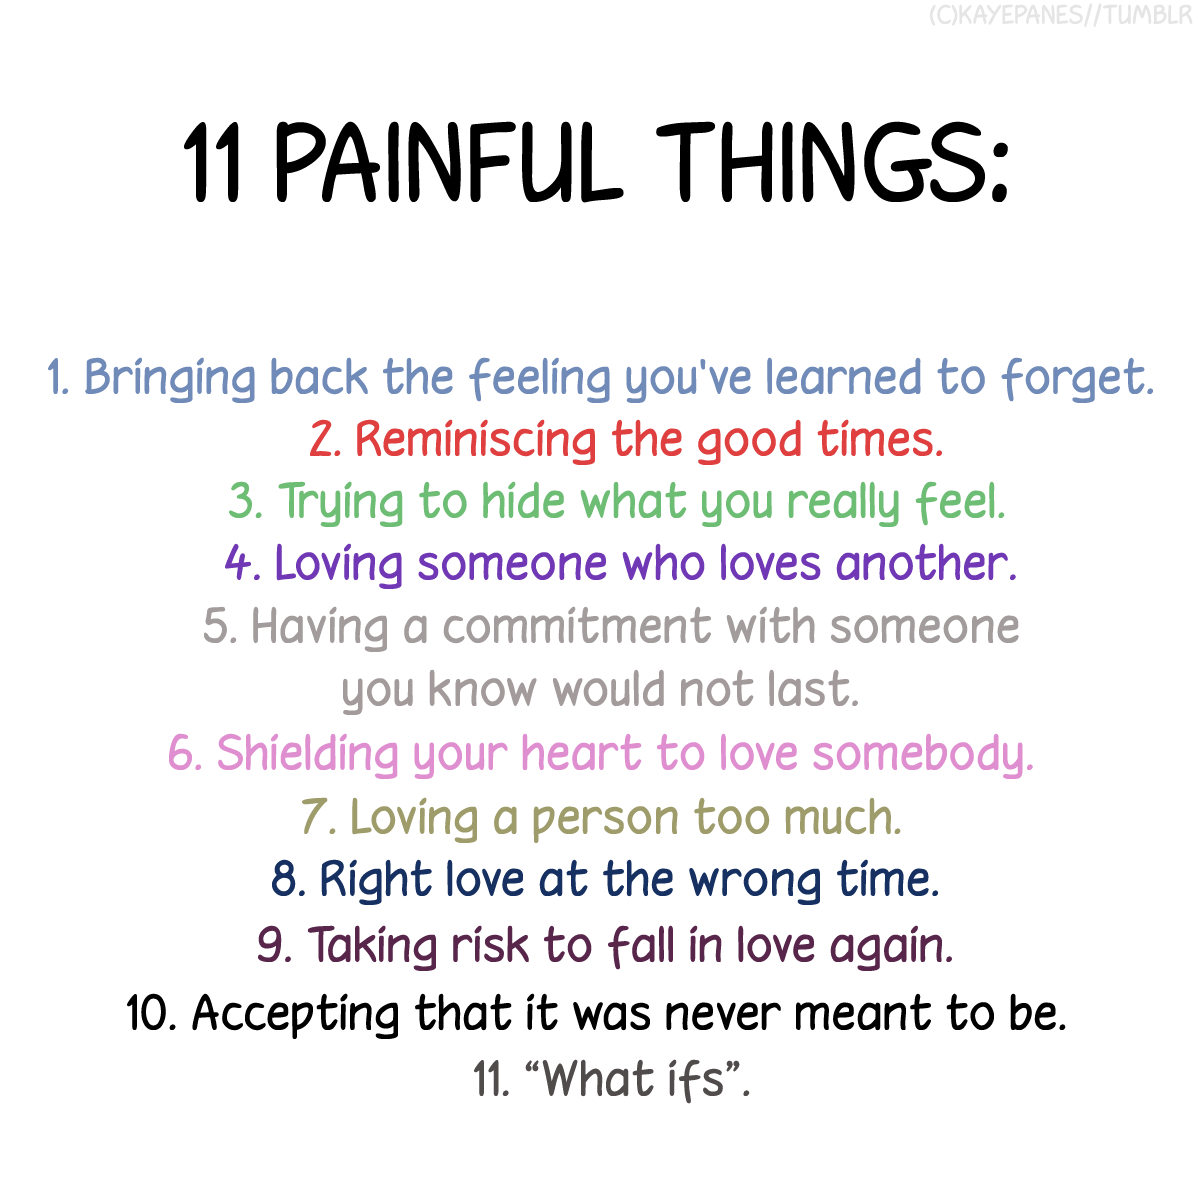 Cute Life Quotes Classy Cute Life Quotes 11 Painful Things  Picsmine